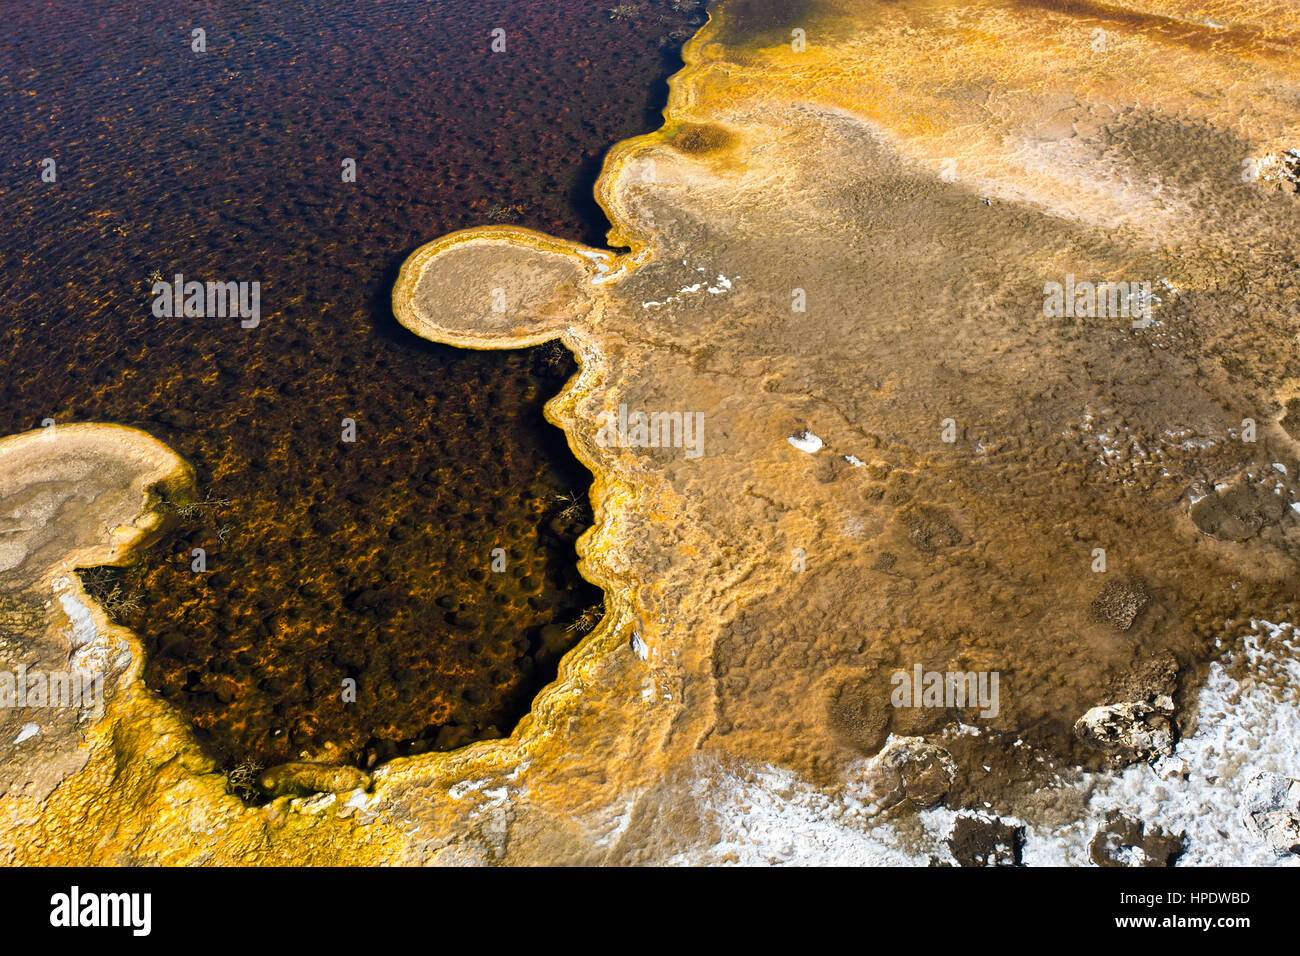 Close detail of a microbial algal mat growing in a hot spring at Yellowstone National Park in Wyoming. - Stock Image